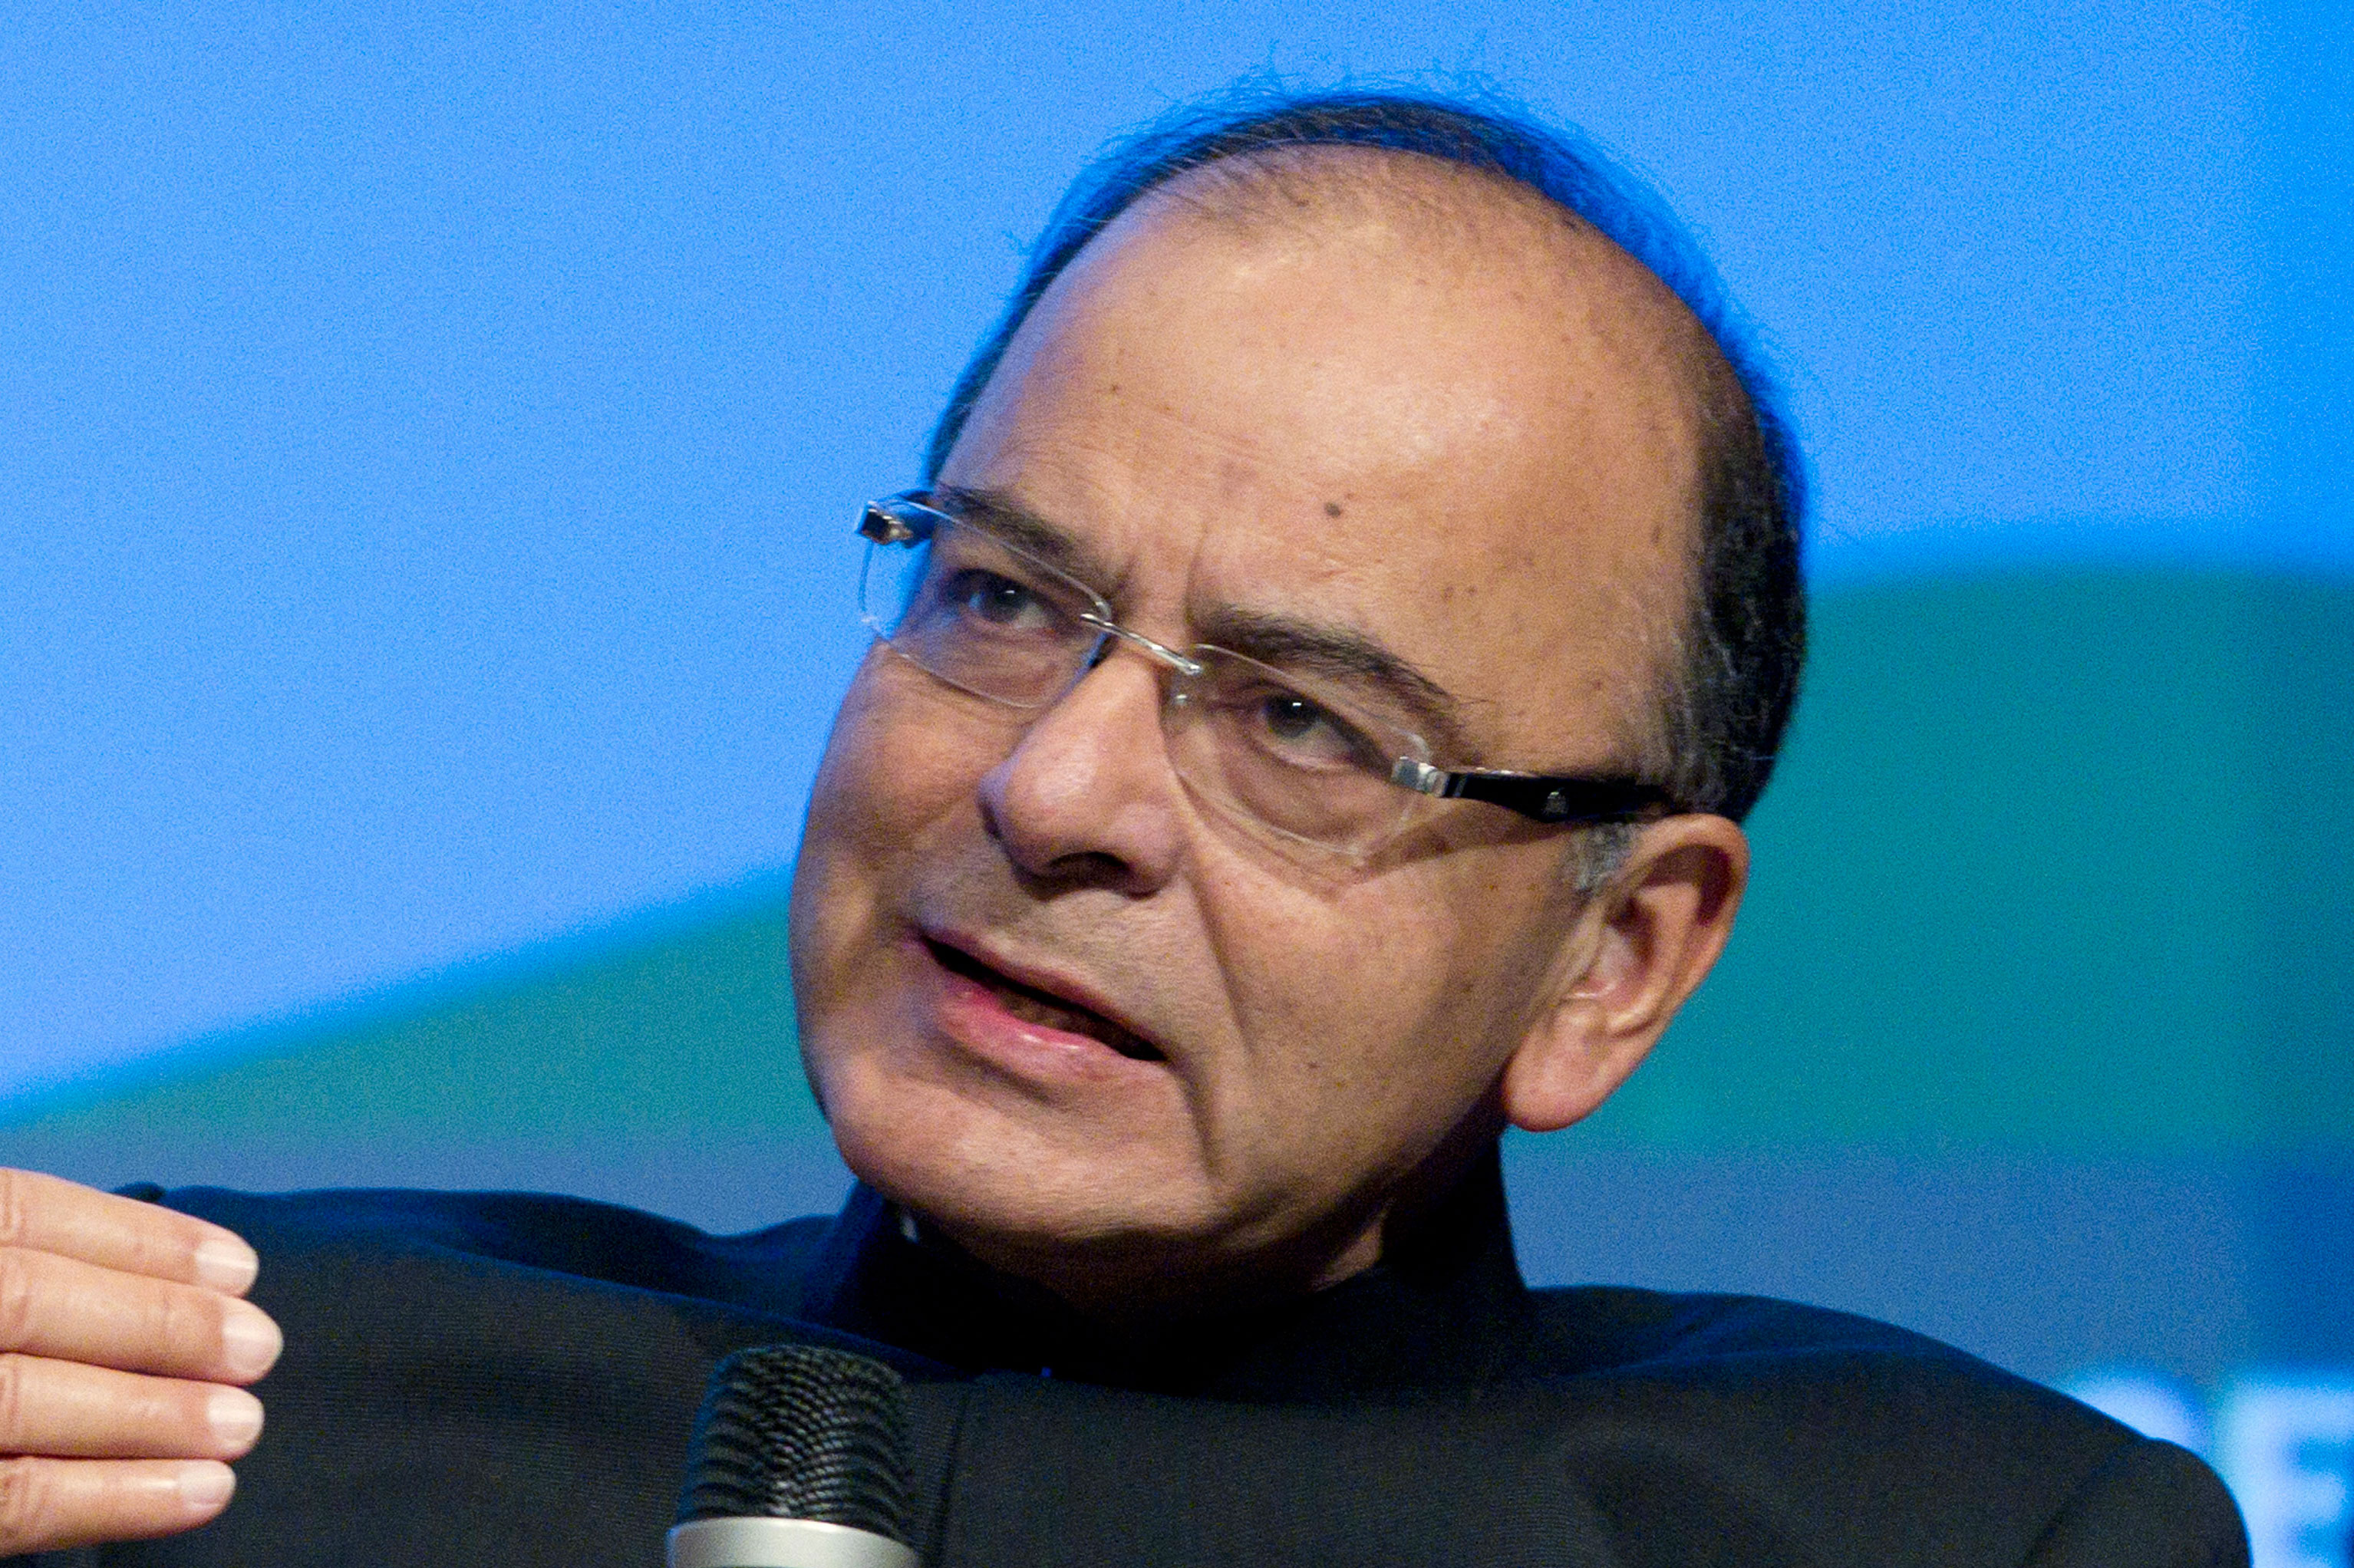 "Although Arun Jaitley had voluntarily opted out of Modi's second cabinet because of his poor health, his passing will be felt in the BJP, which has lost its ""modernist face"" and foremost perception manager."